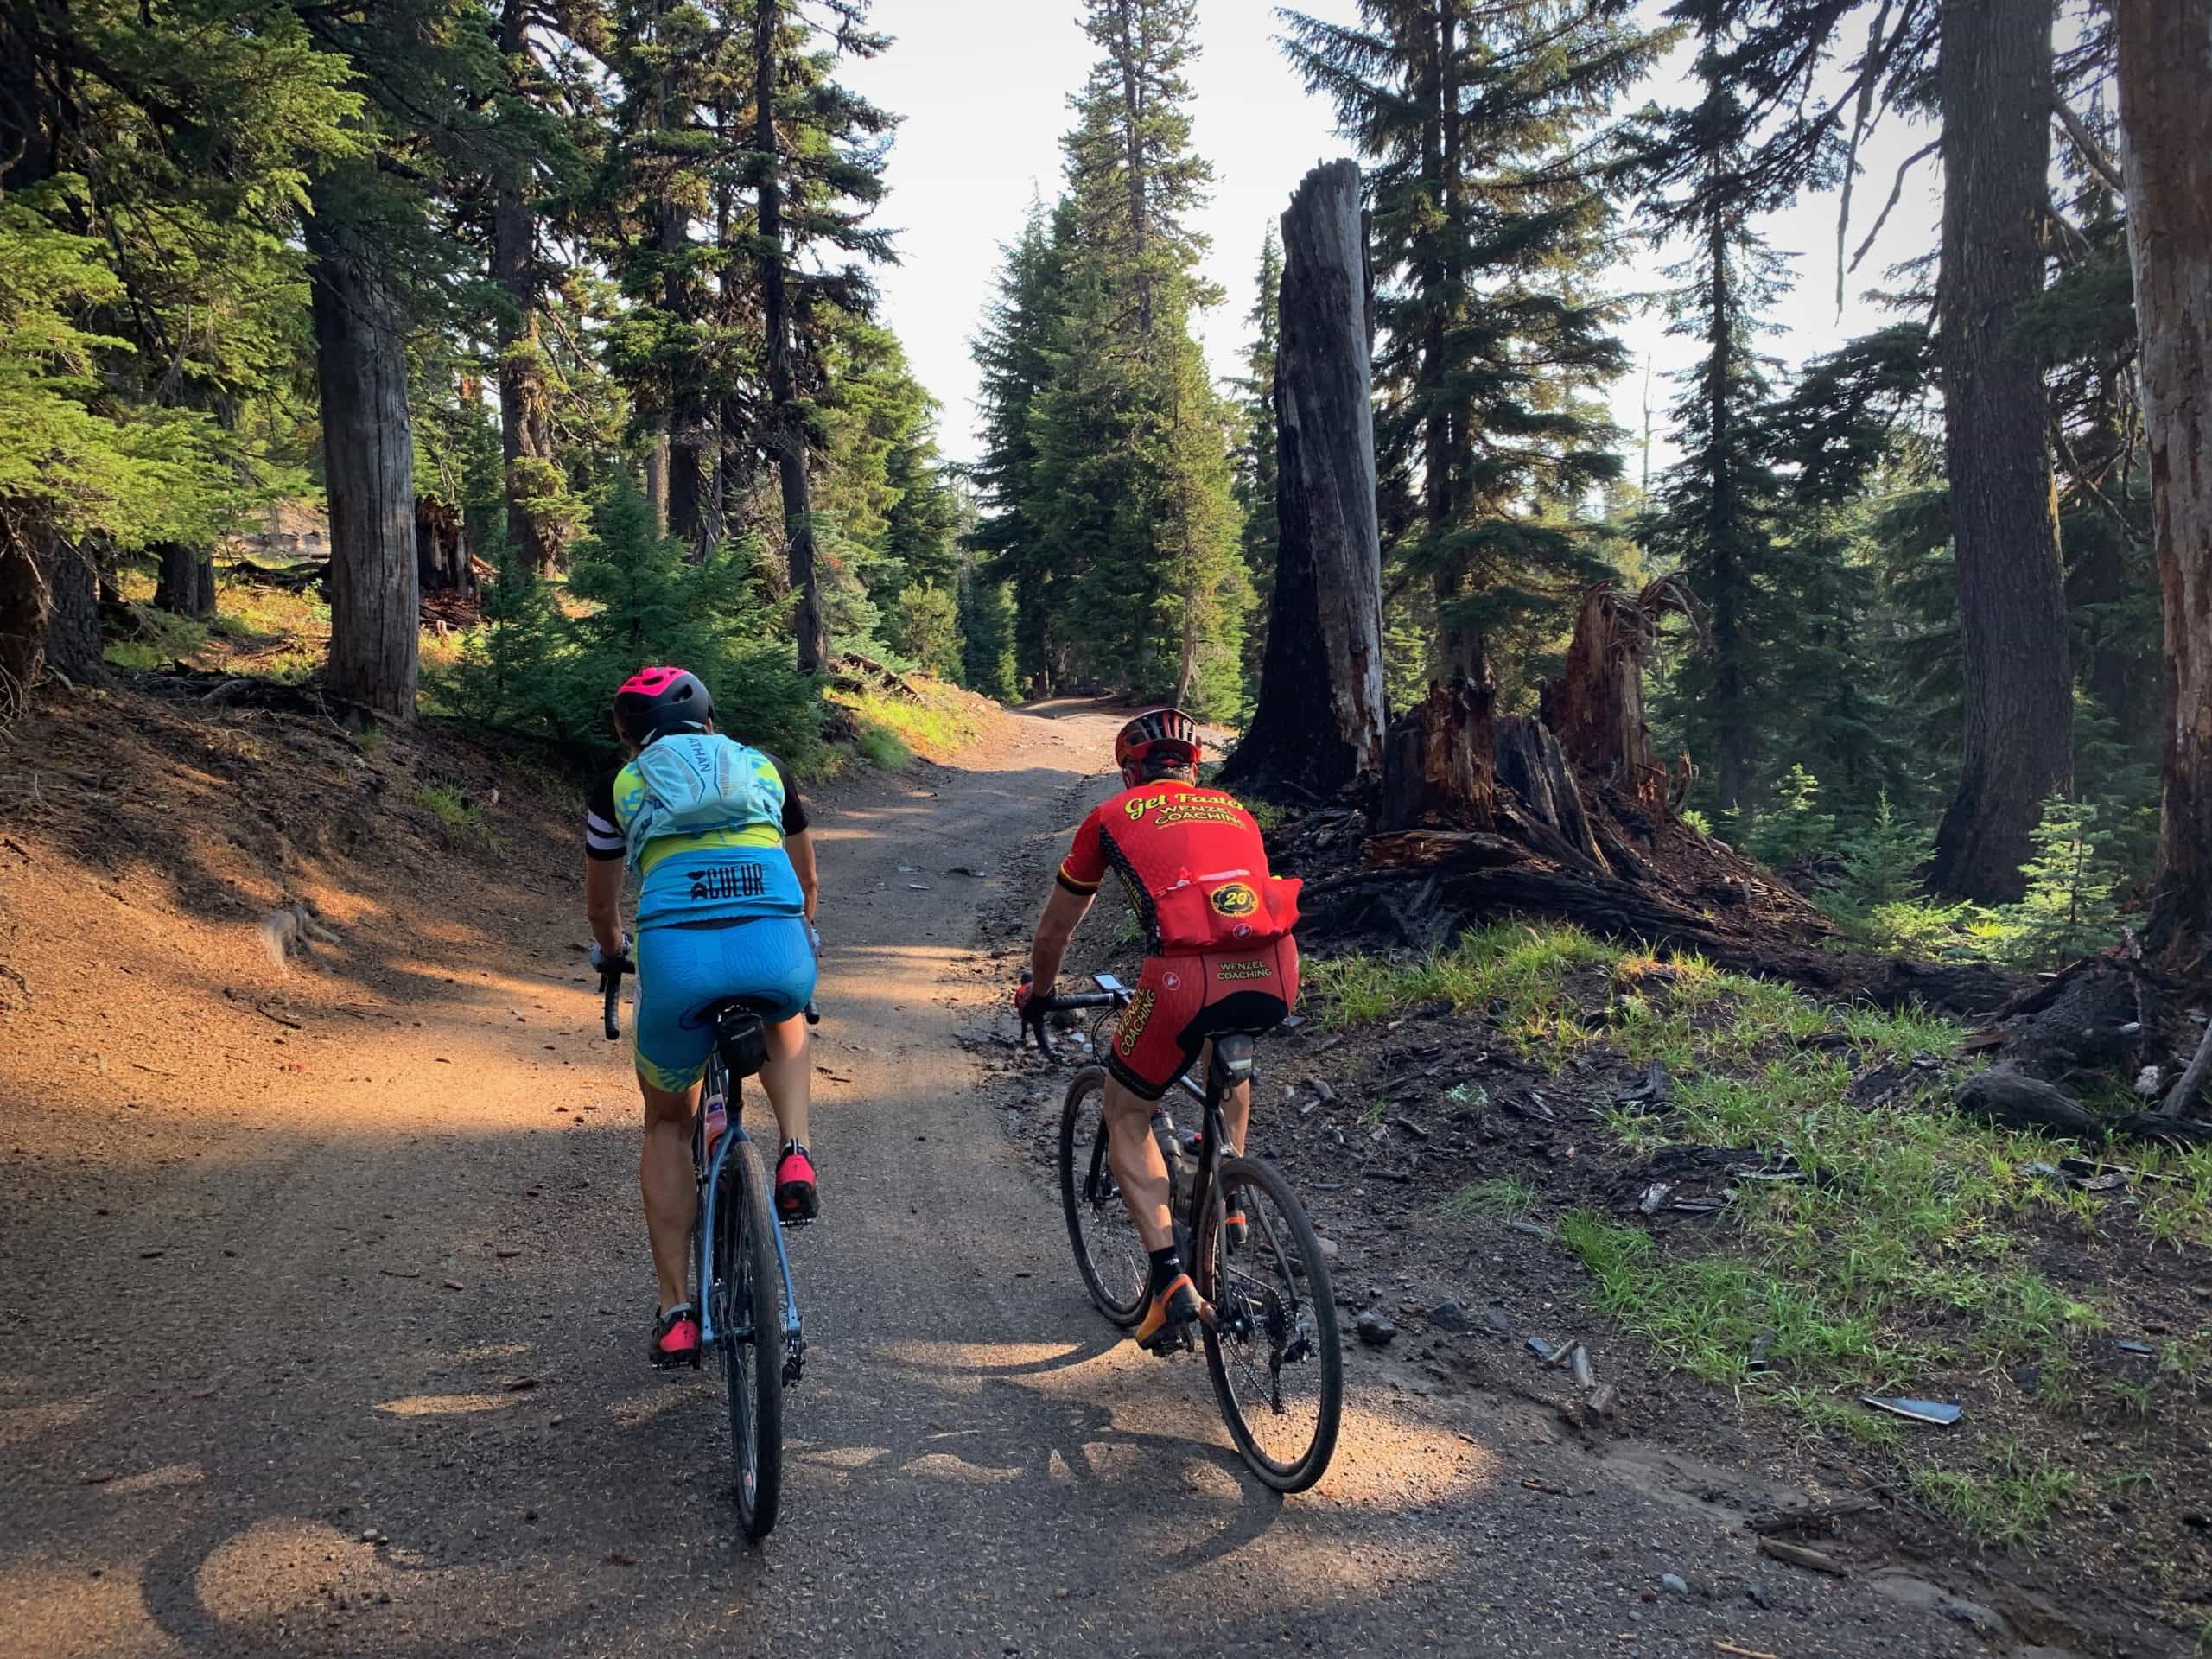 Riding the forest service roads in the Deschutes National forest near Bend, Oregon.